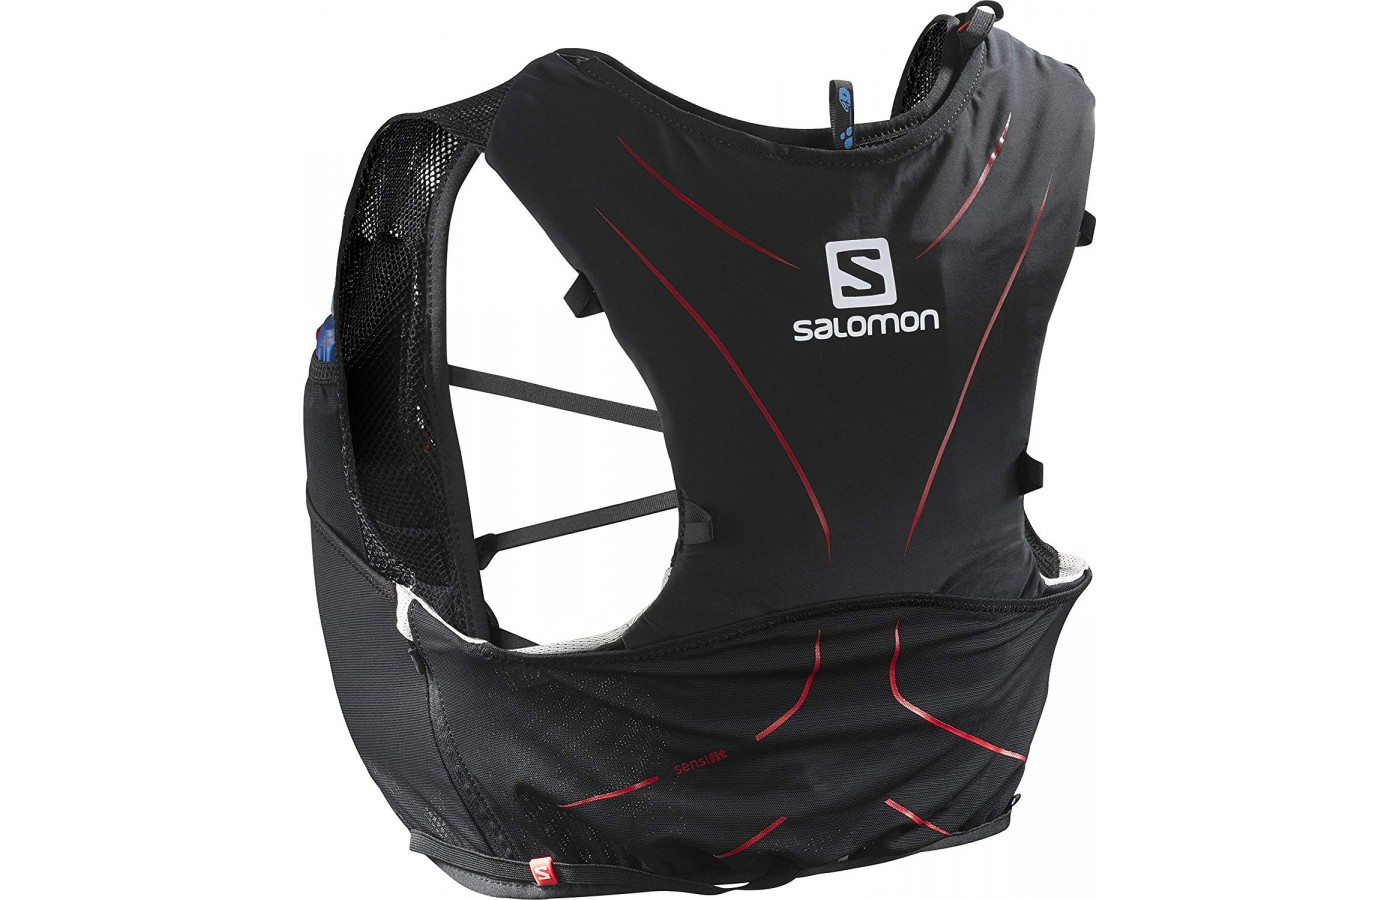 Salomon ADV Skin 12 Side